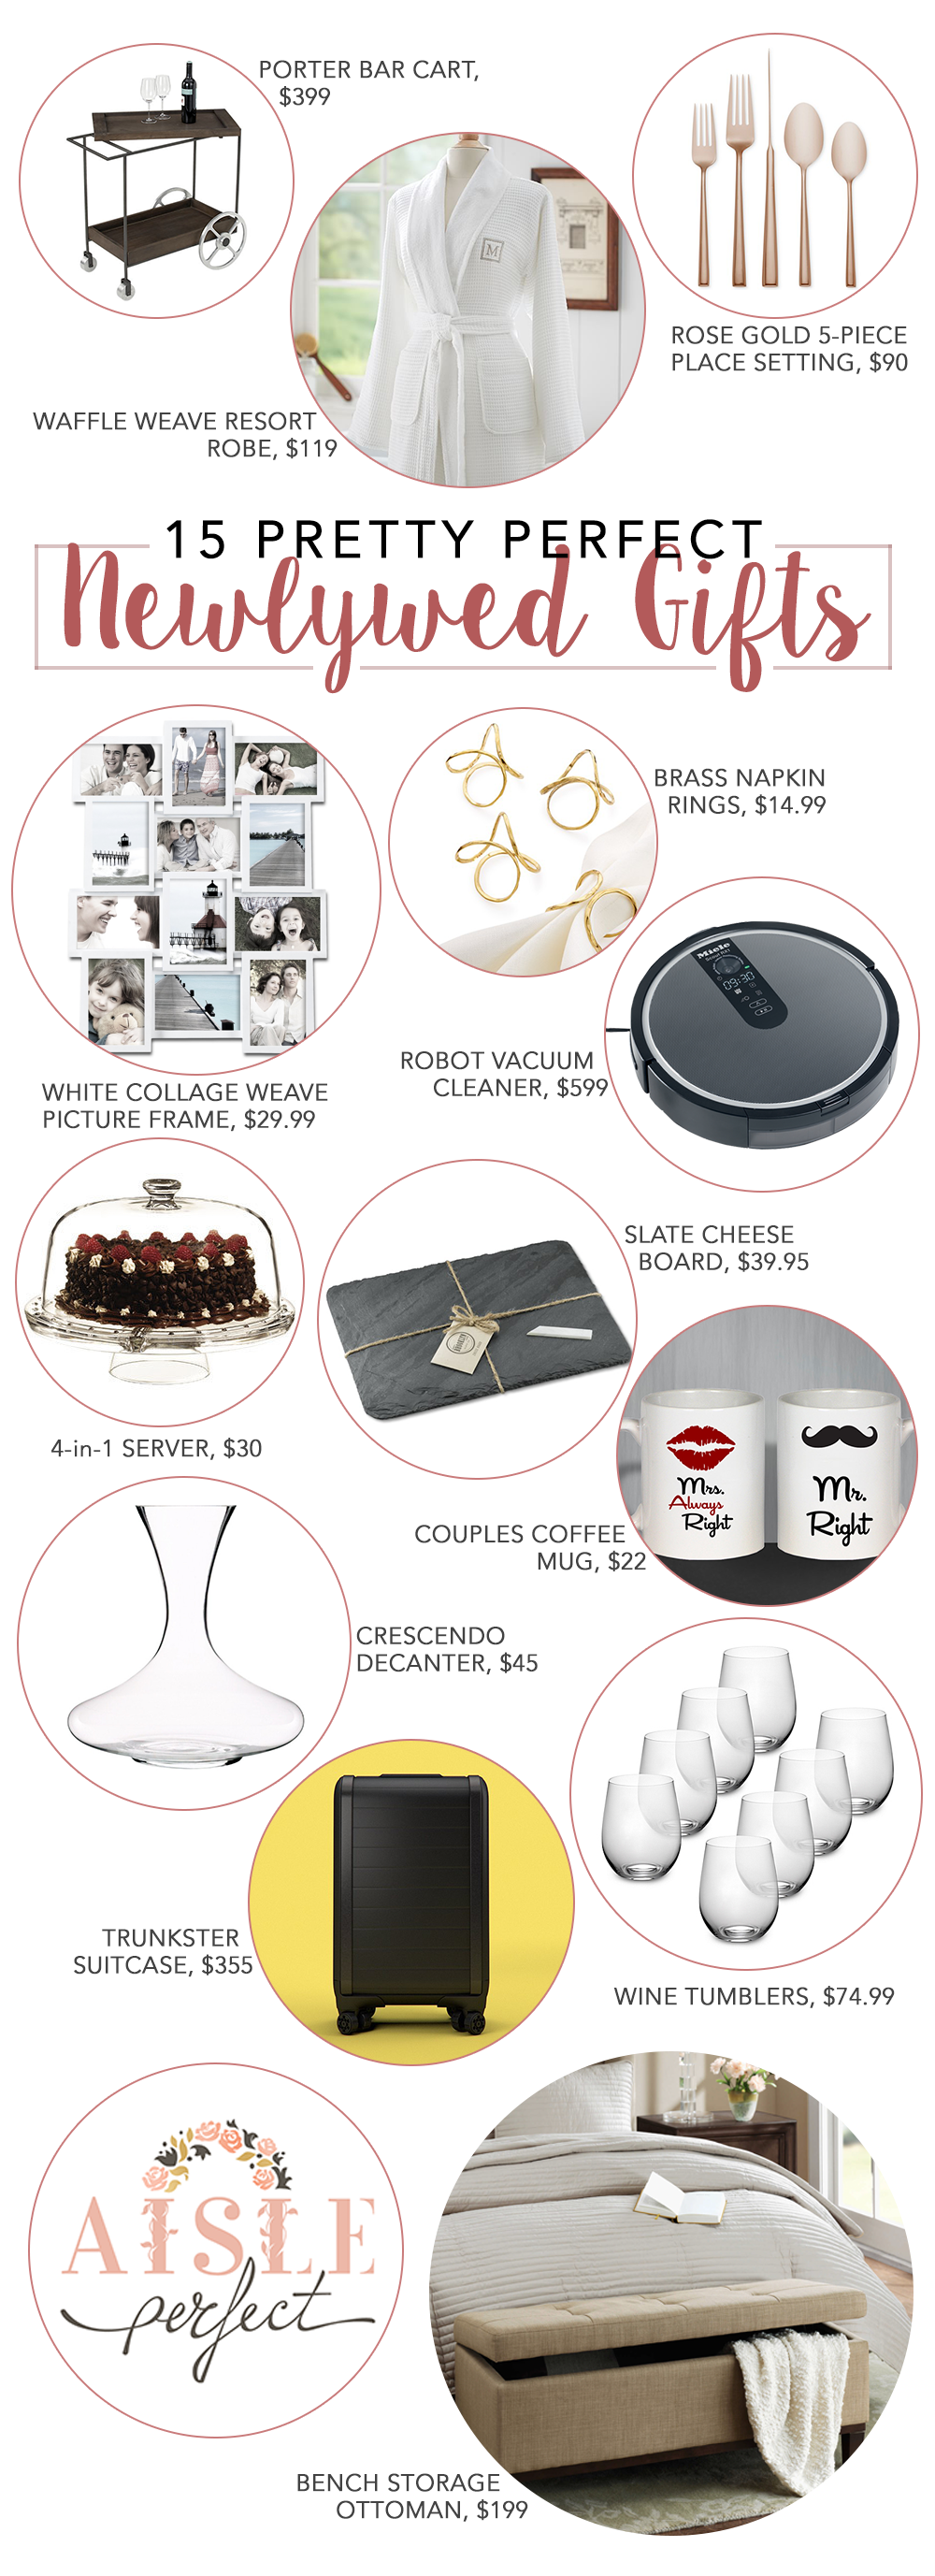 15-Pretty-Perfect-Newlywed-Gifts